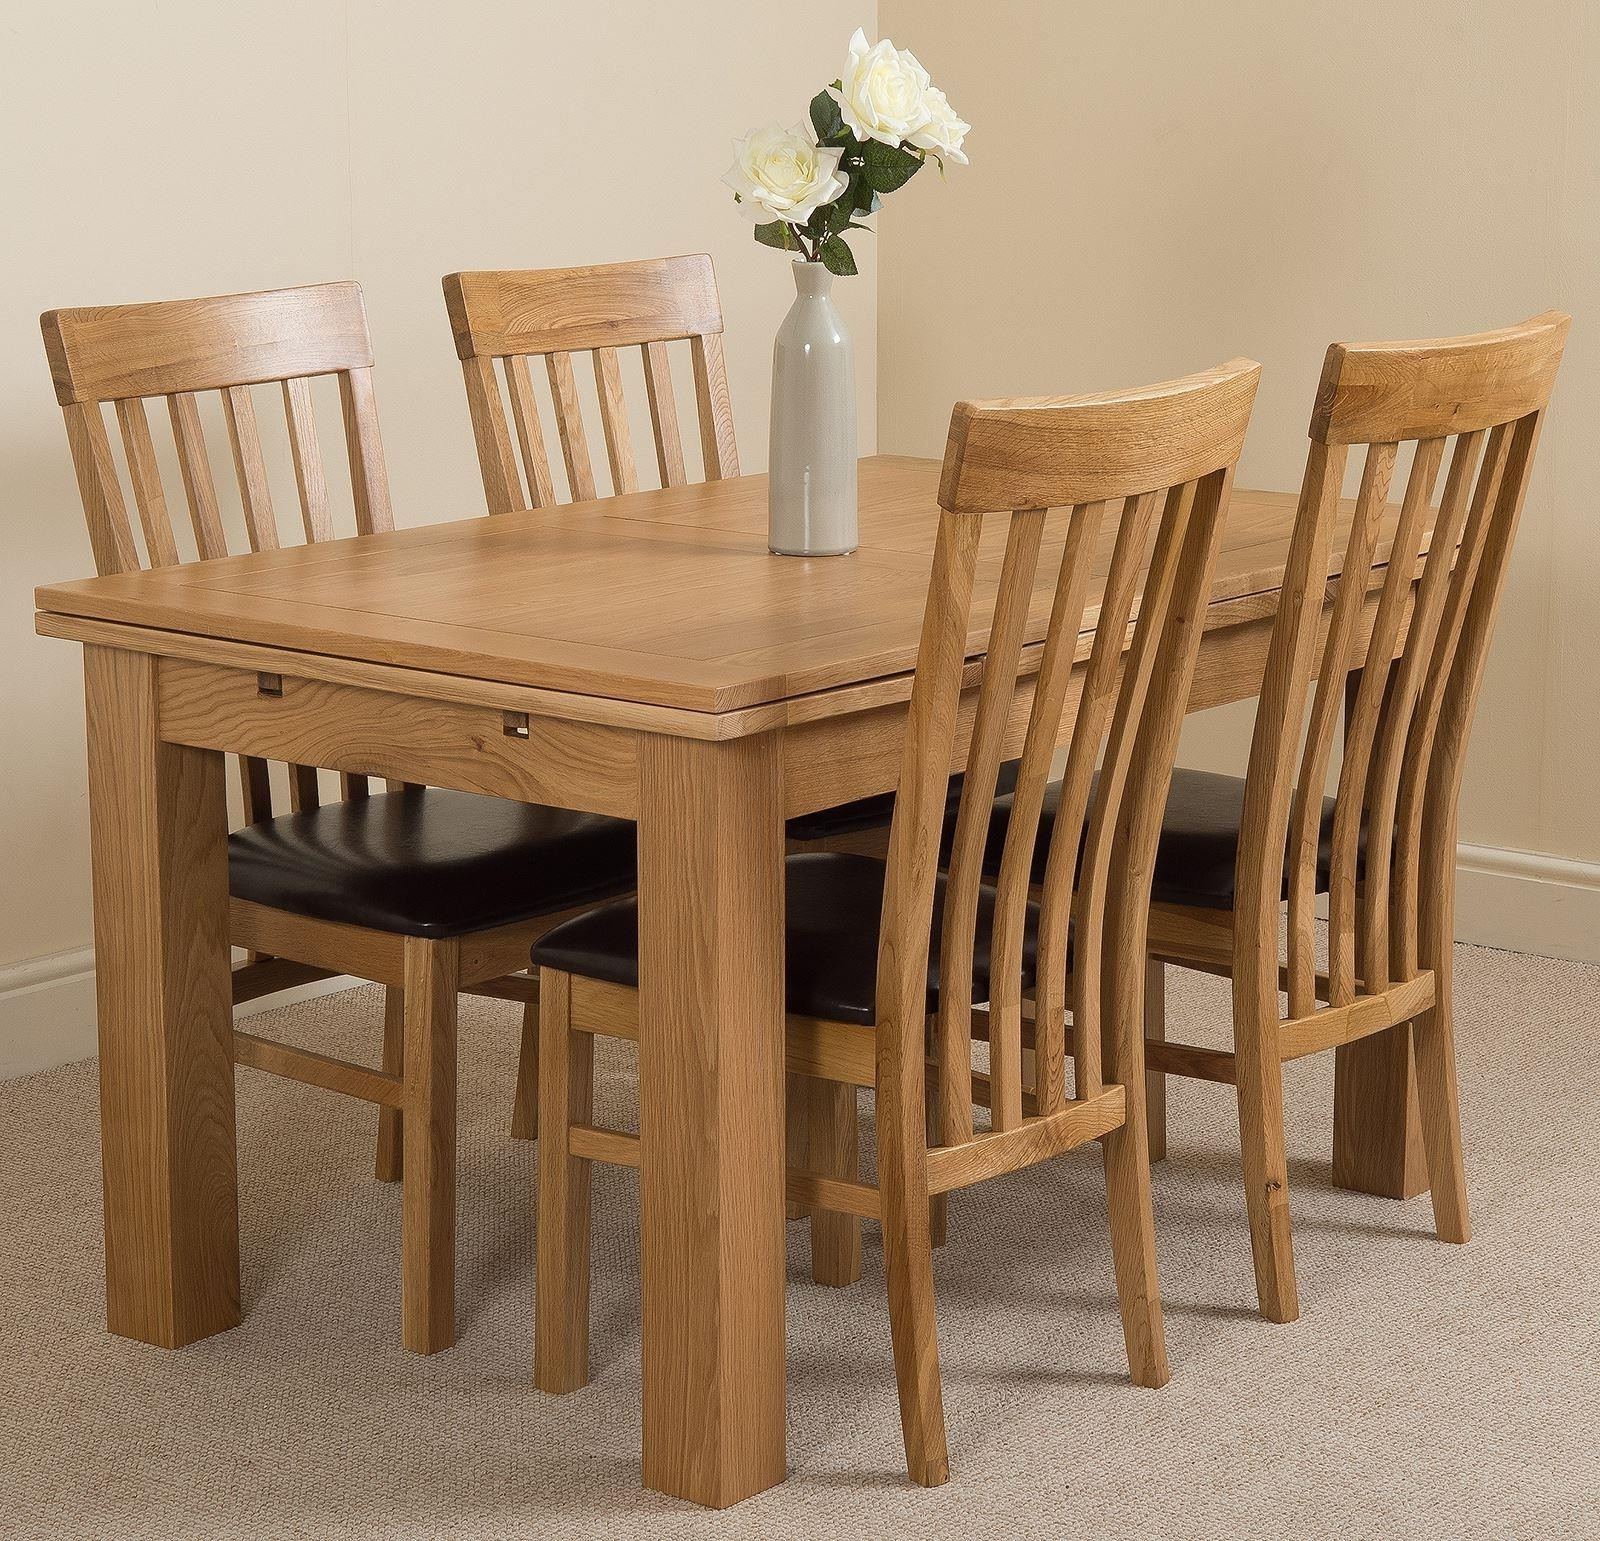 Trendy Oak Dining Tables And 4 Chairs Throughout Richmond Oak Small Dining Set 4 Harvard Chairs (View 22 of 25)